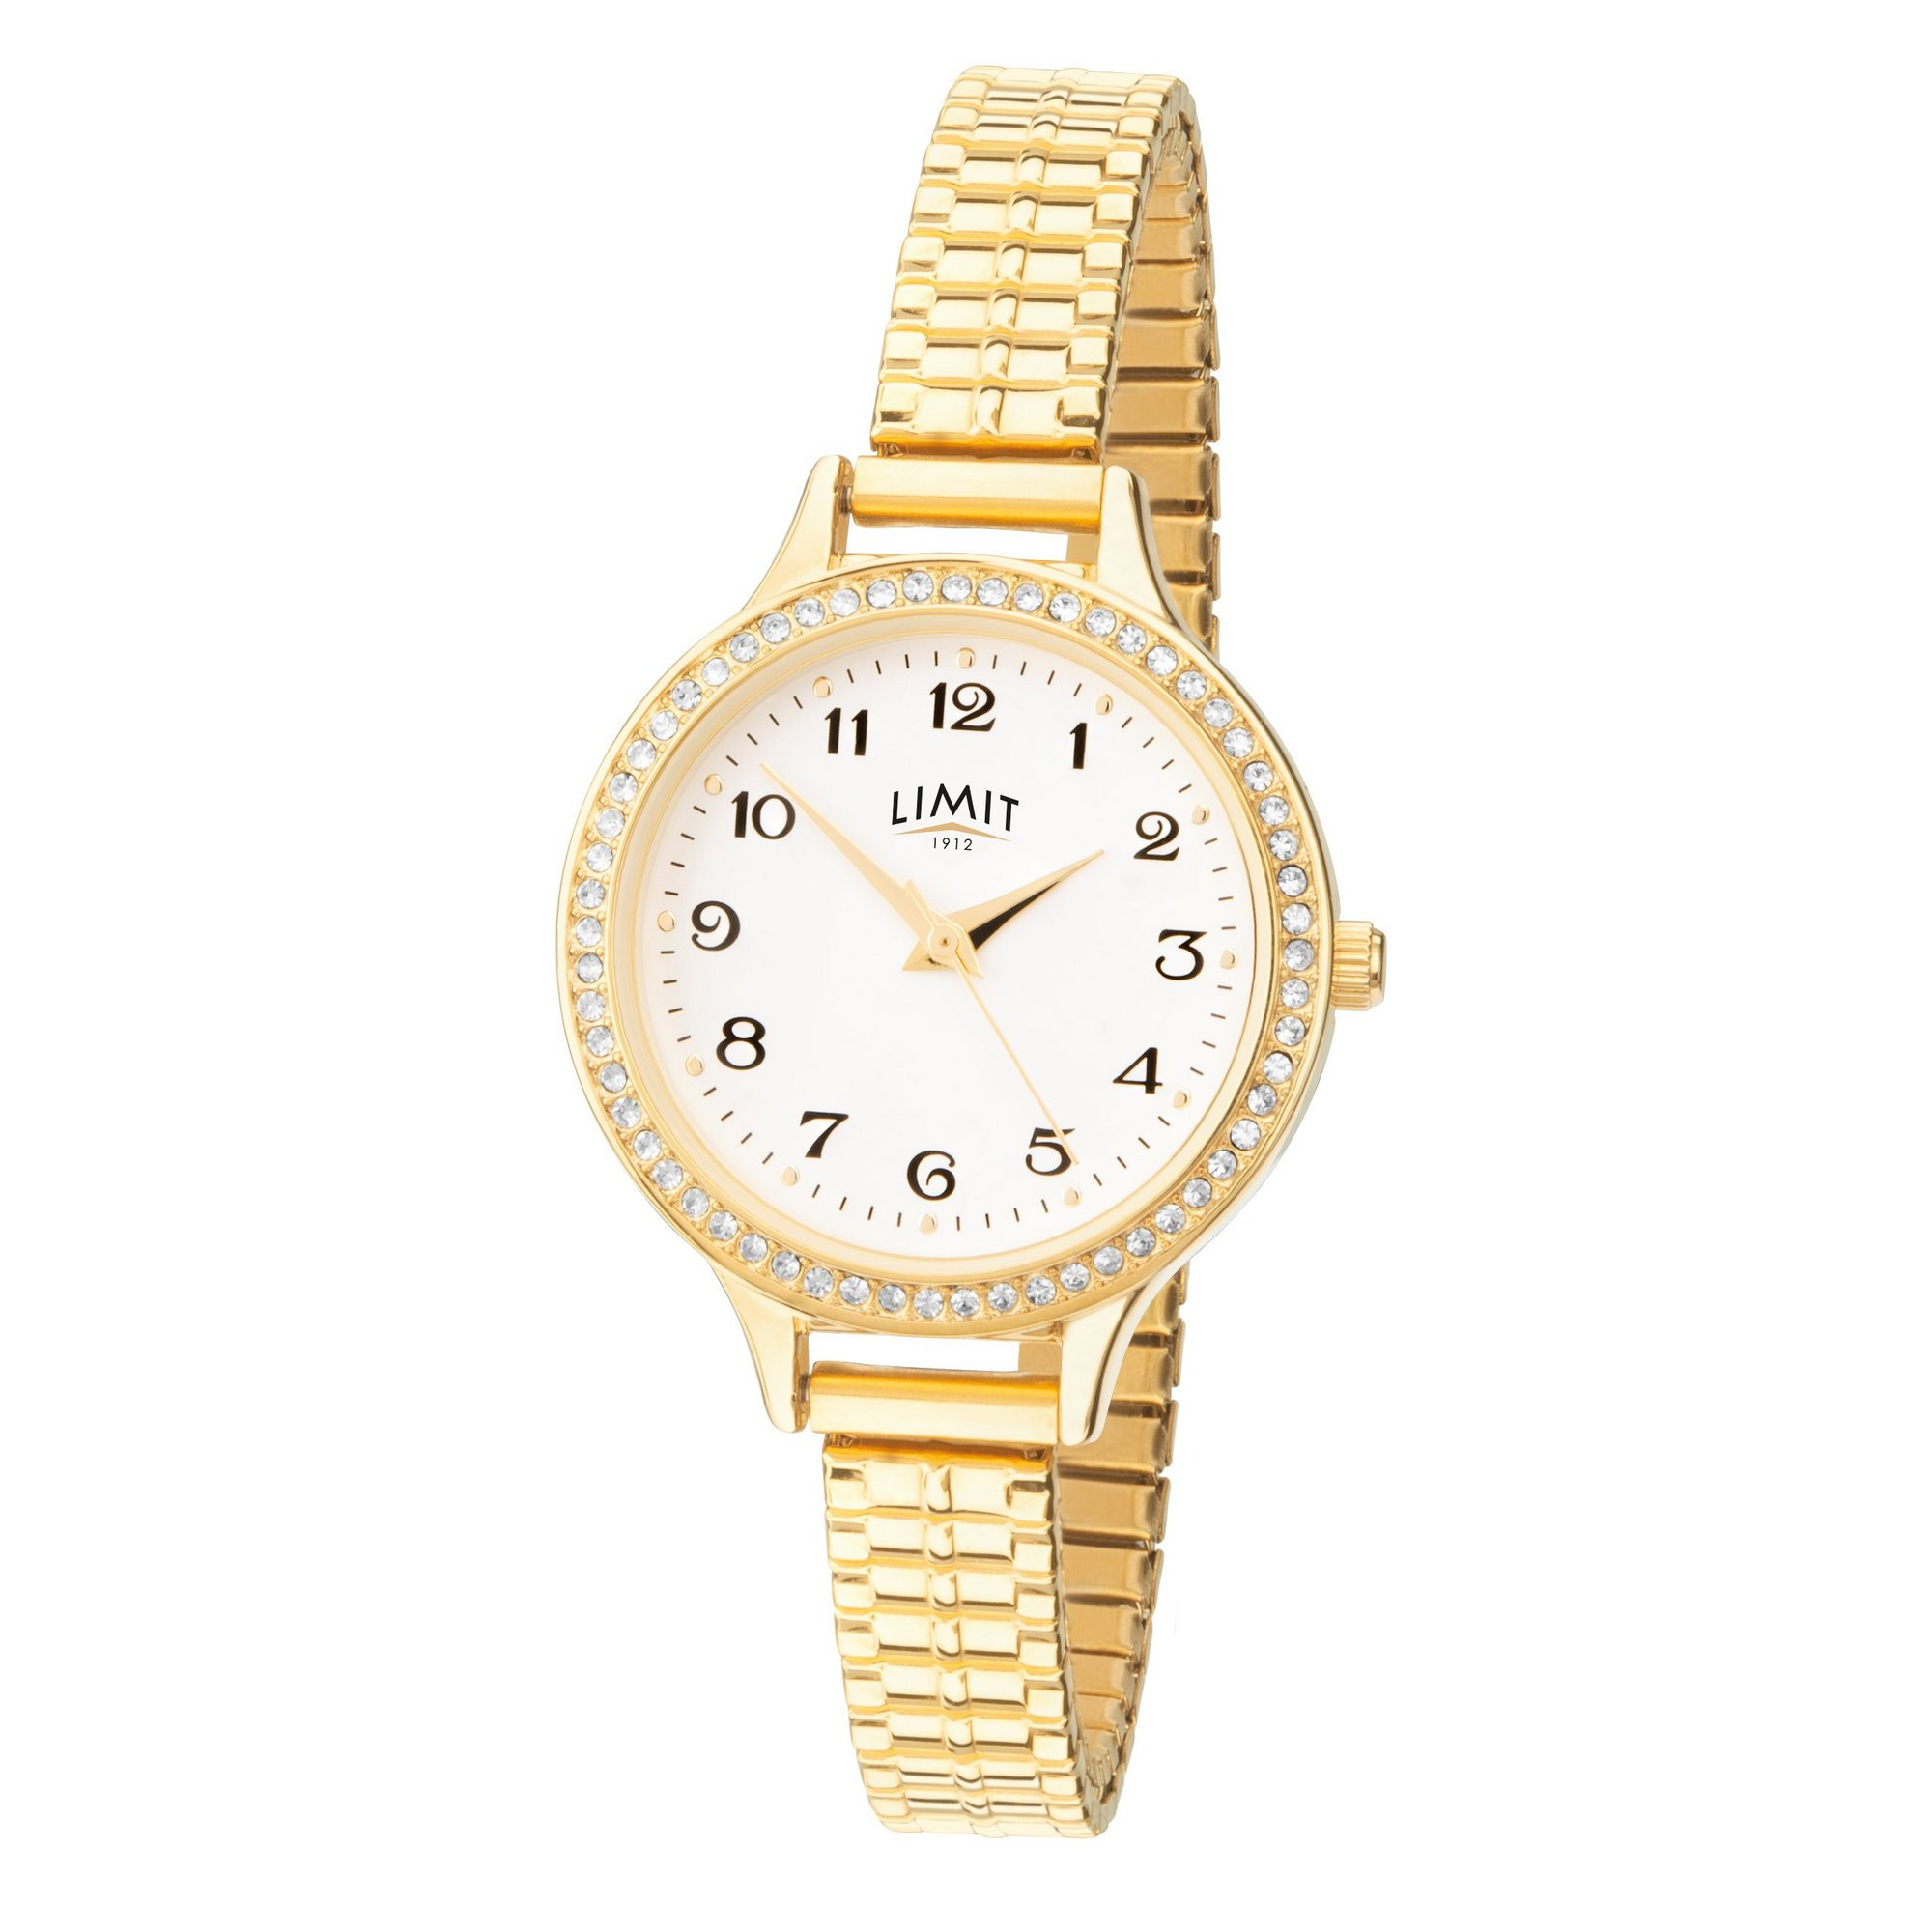 Image of Limit Ladies Gold Plated Expander Bracelet Watch